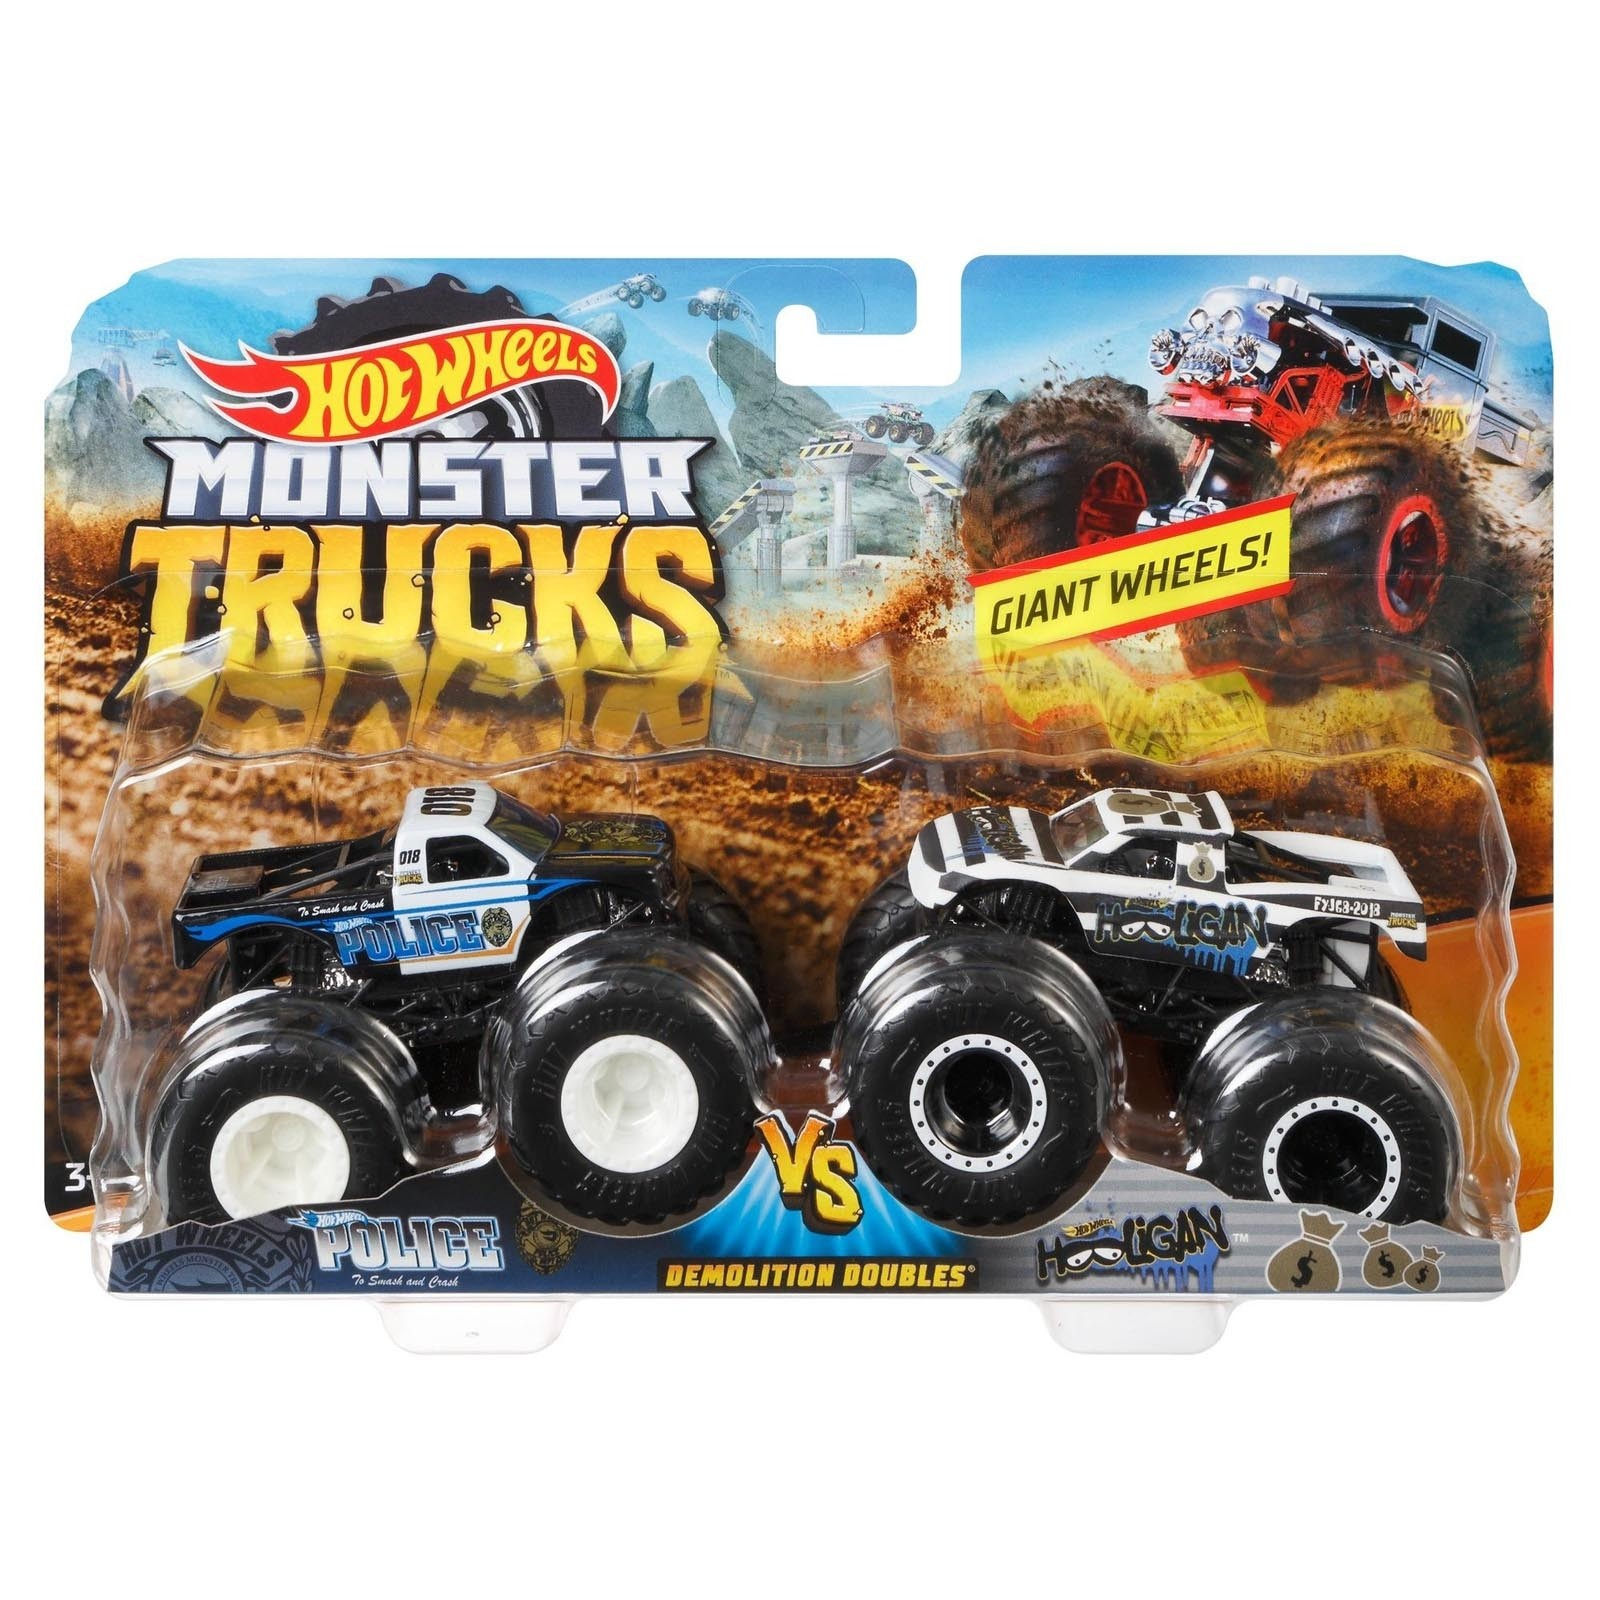 Pack com 2 Hot Wheels - 1:64 - Police vs Hoooligan - Monster Trucks - FYJ68